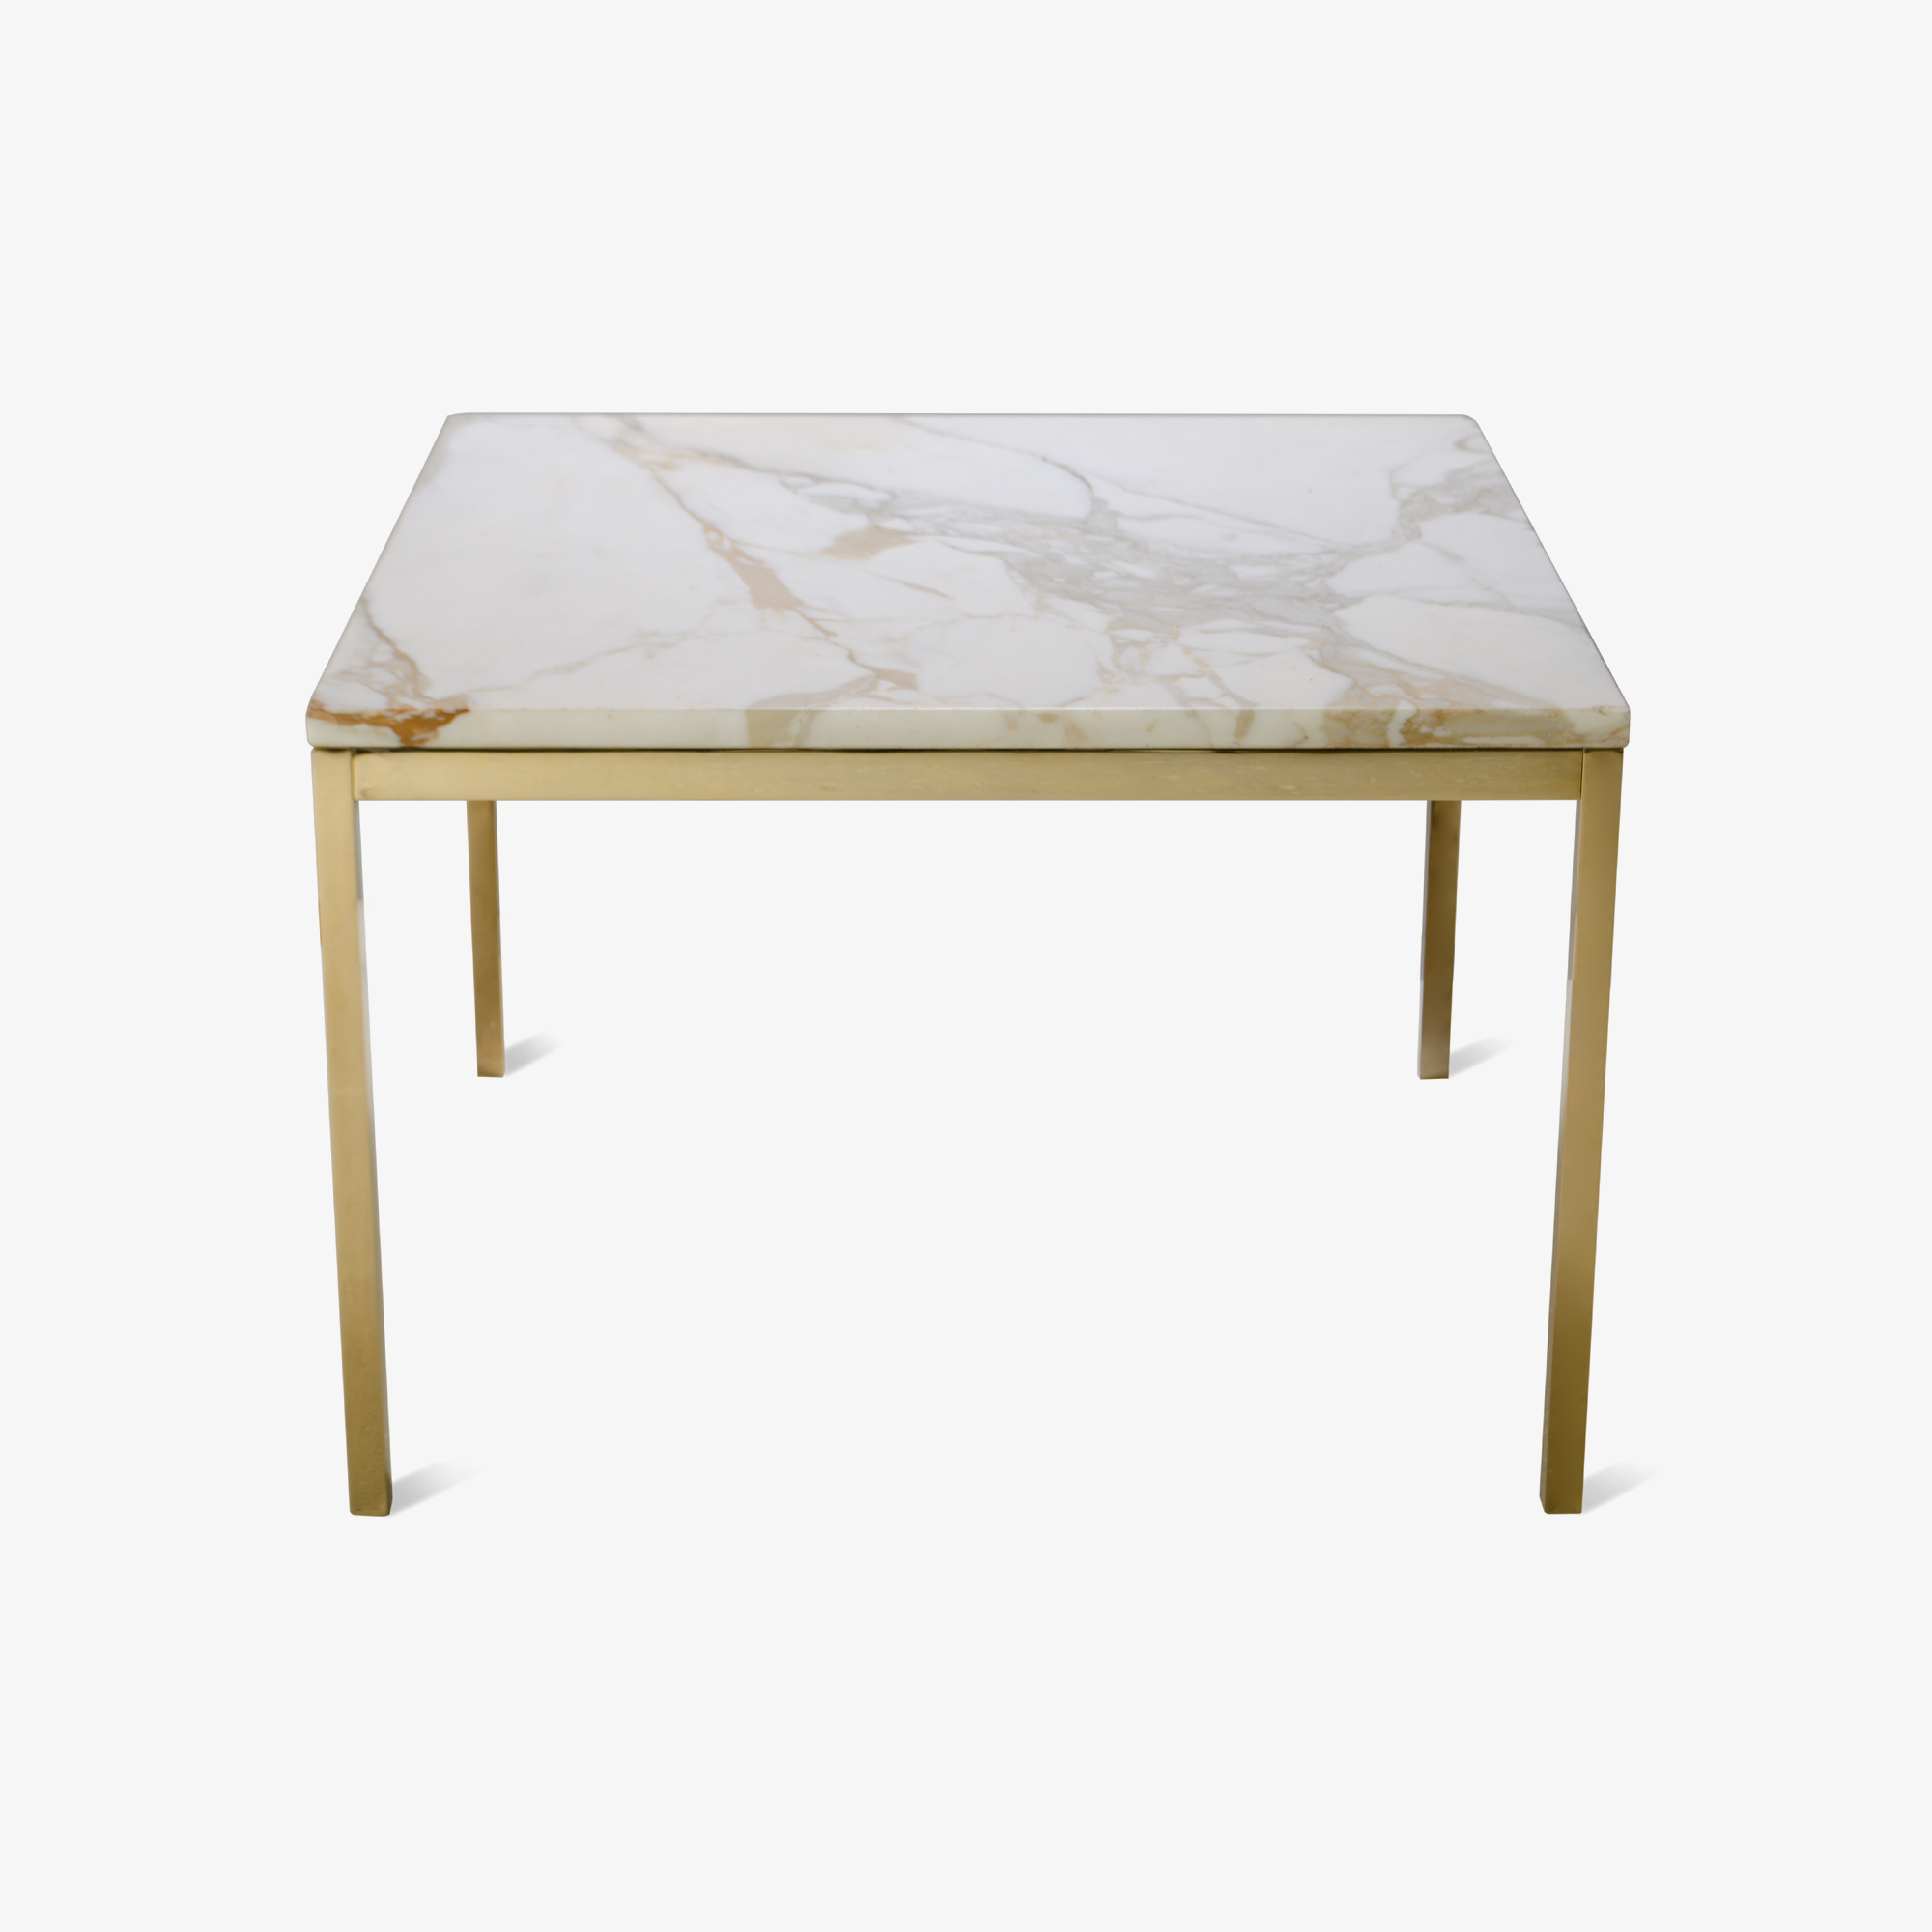 Florence Knoll Coffee Table with Calacatta Marble, 24k Gold Edition.png